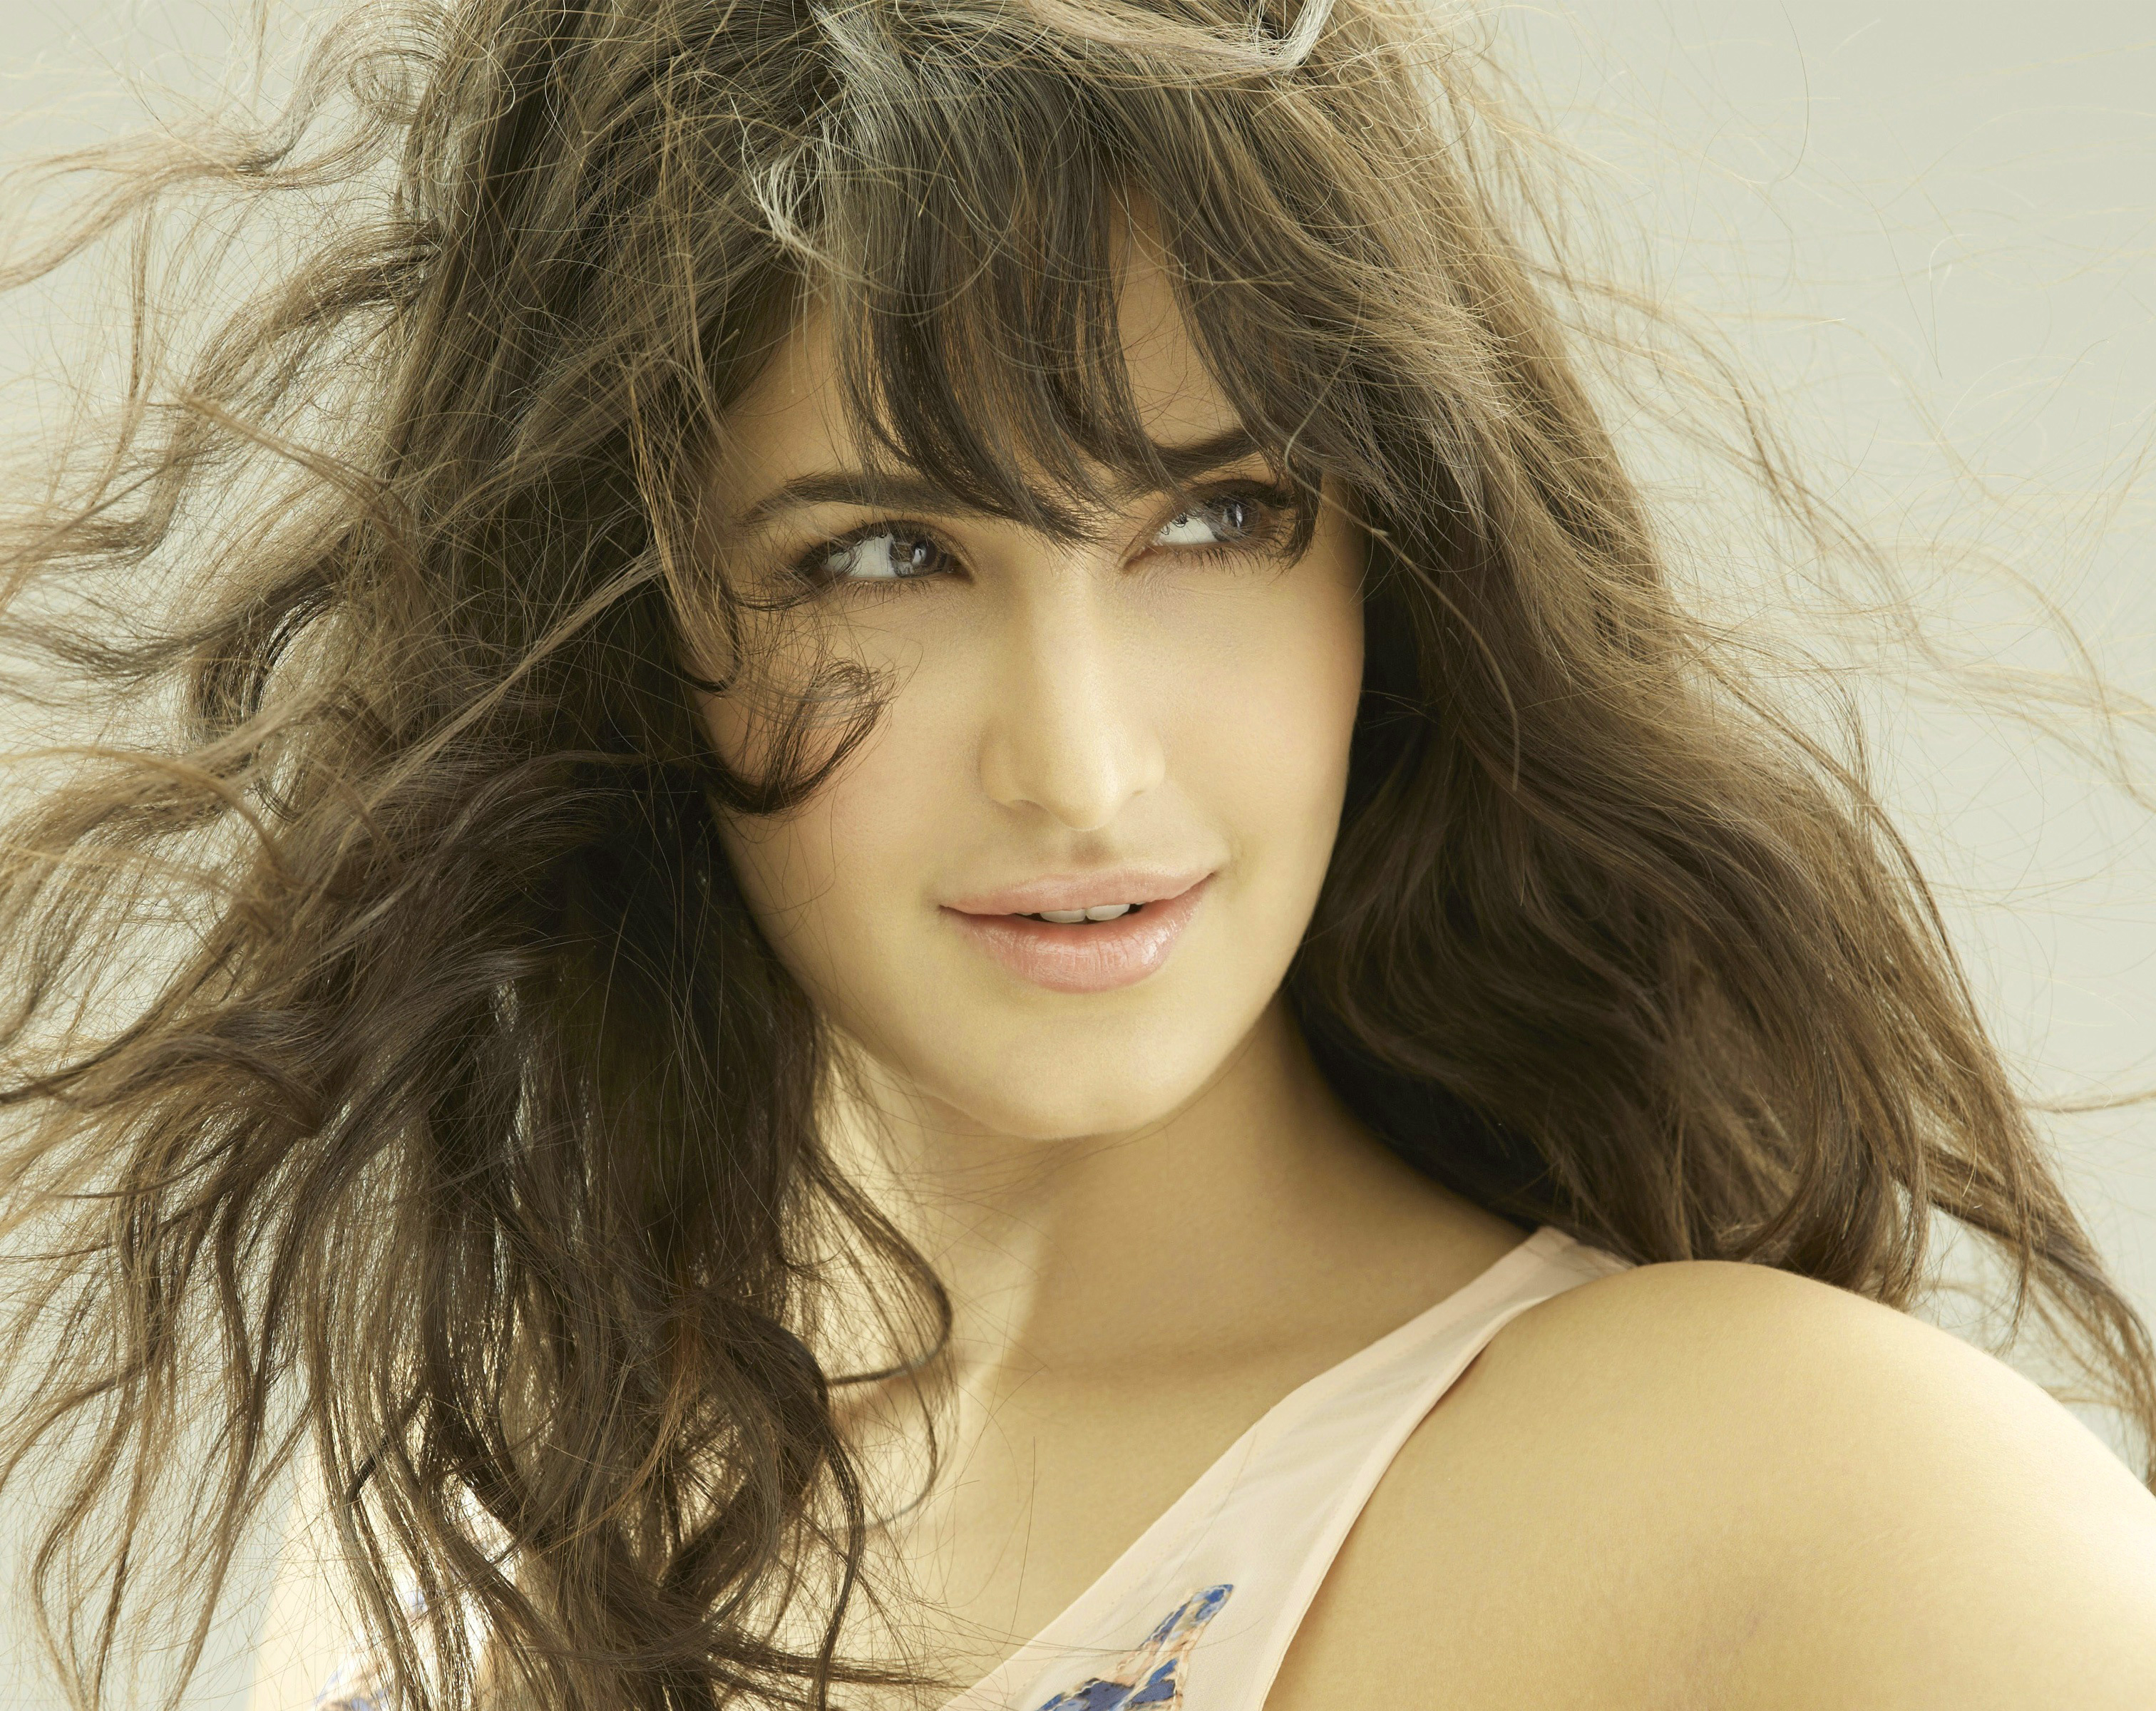 Bollywood Actress images Wallpaper Pics Download